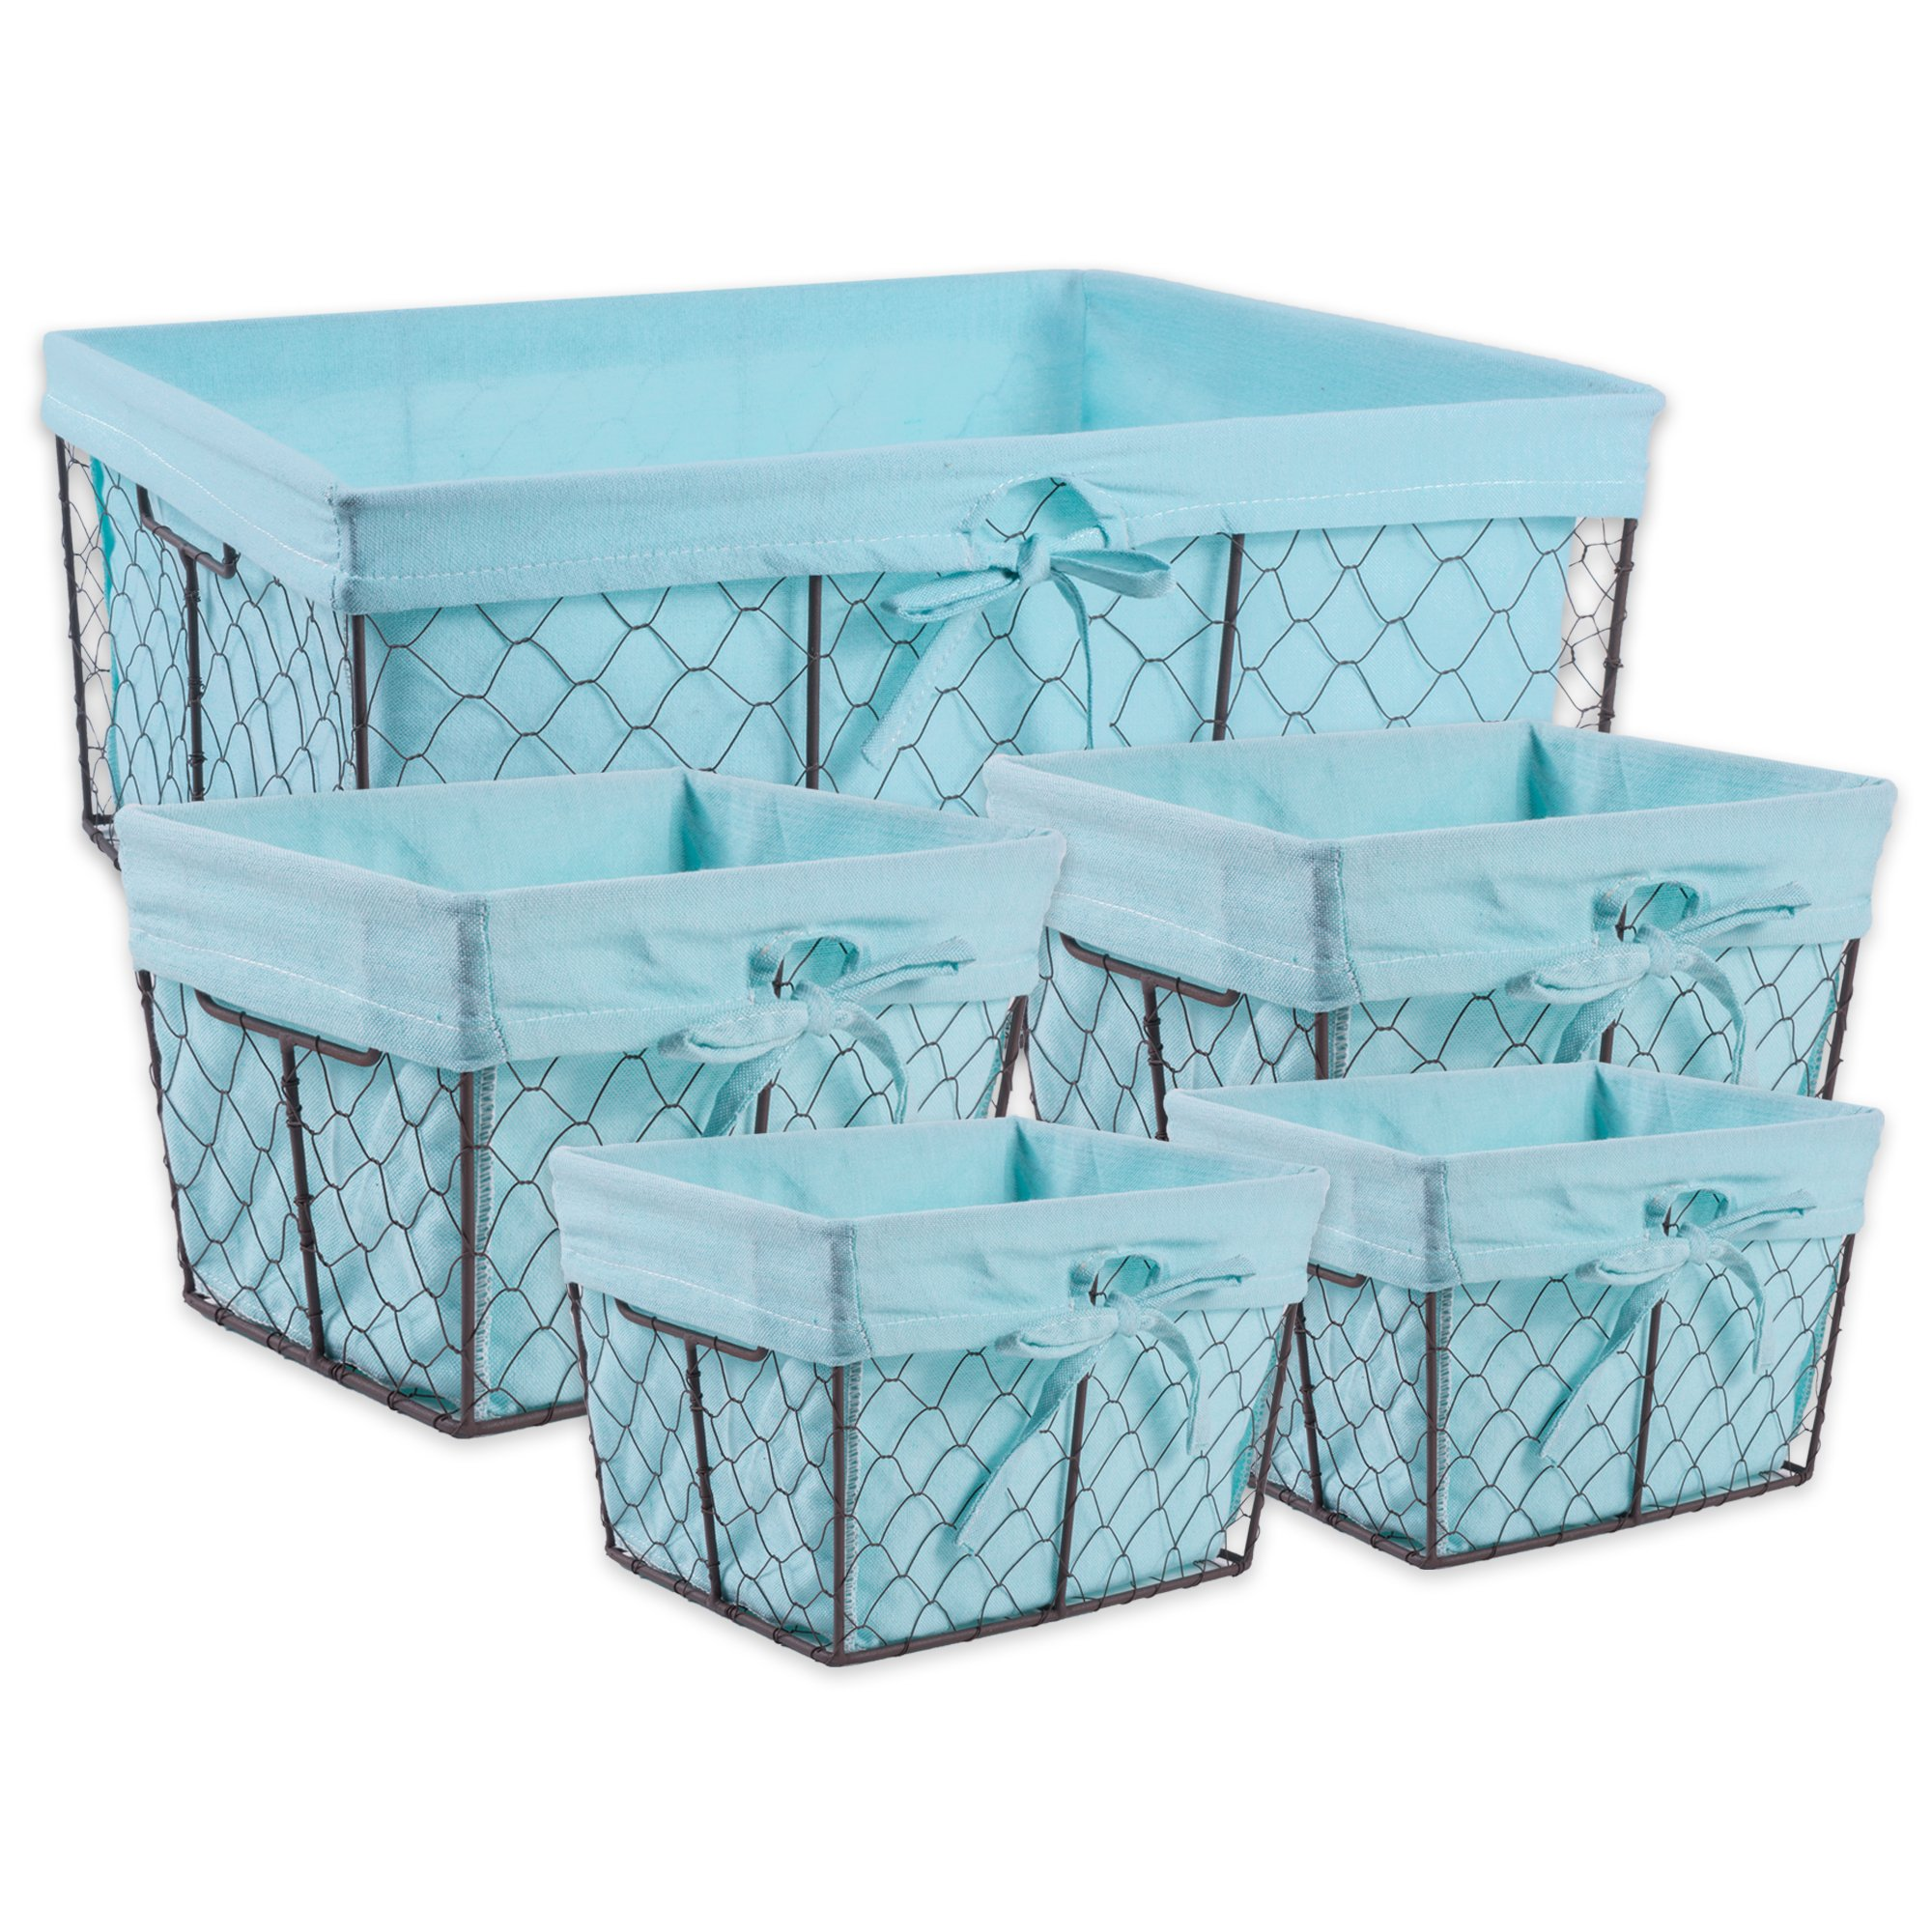 DII Vintage Chicken Wire Baskets for Storage Removable Fabric Liner, Assorted Set of 5, Aqua 5 Piece